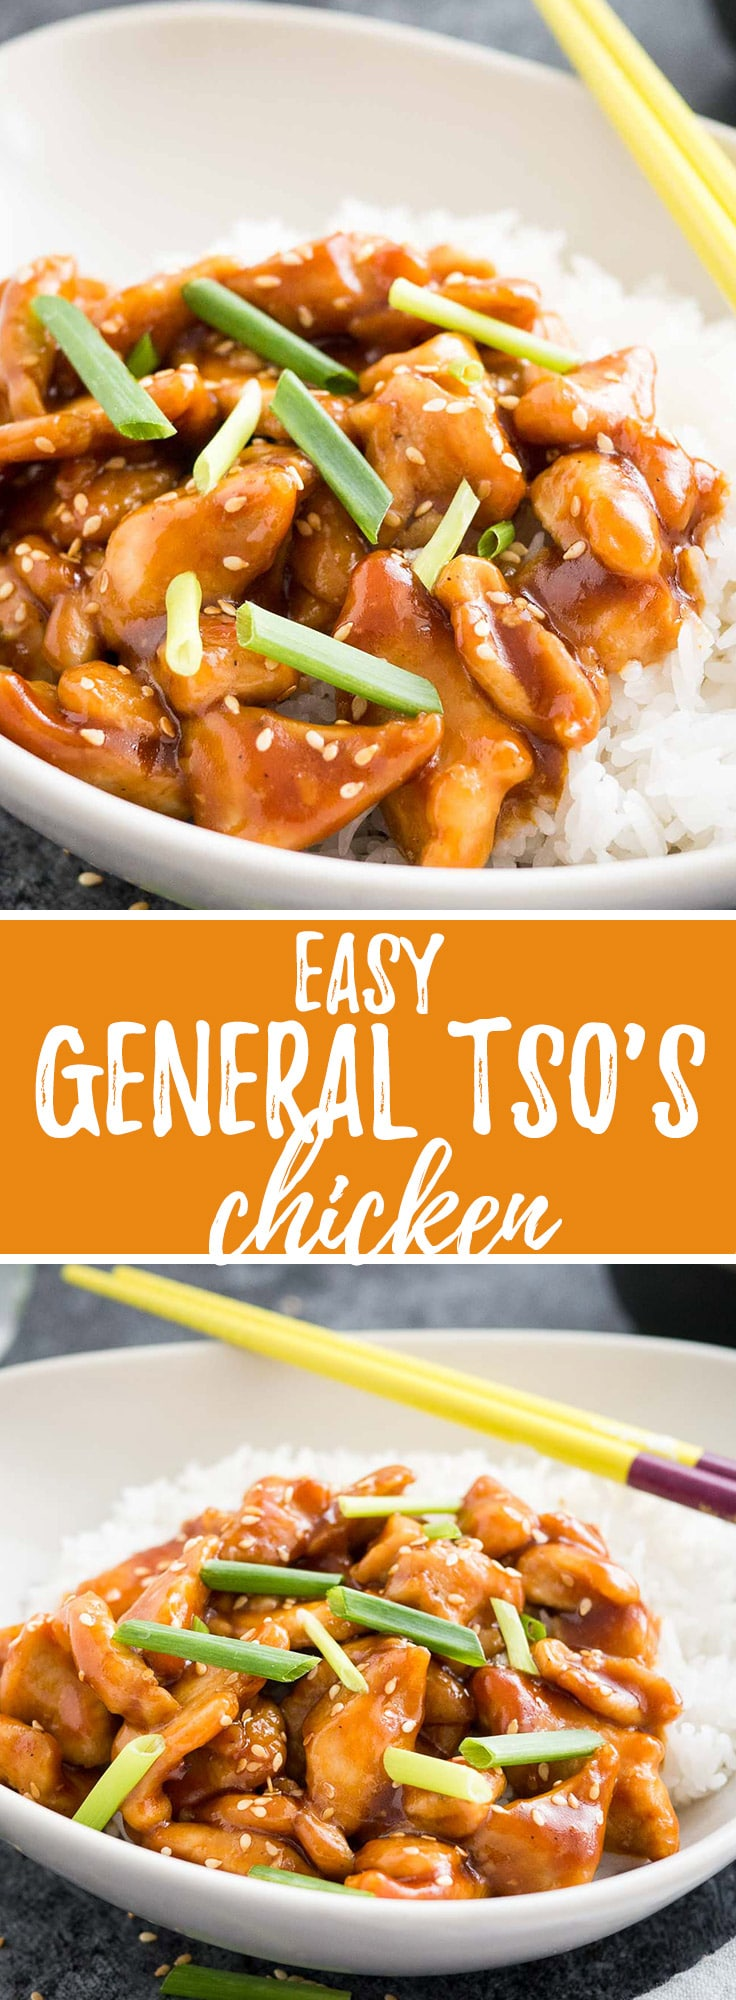 General Tso's is one of the most popular Chinese Food takeout dishes that is sweet, slightly spicy, and so easy to make at home!